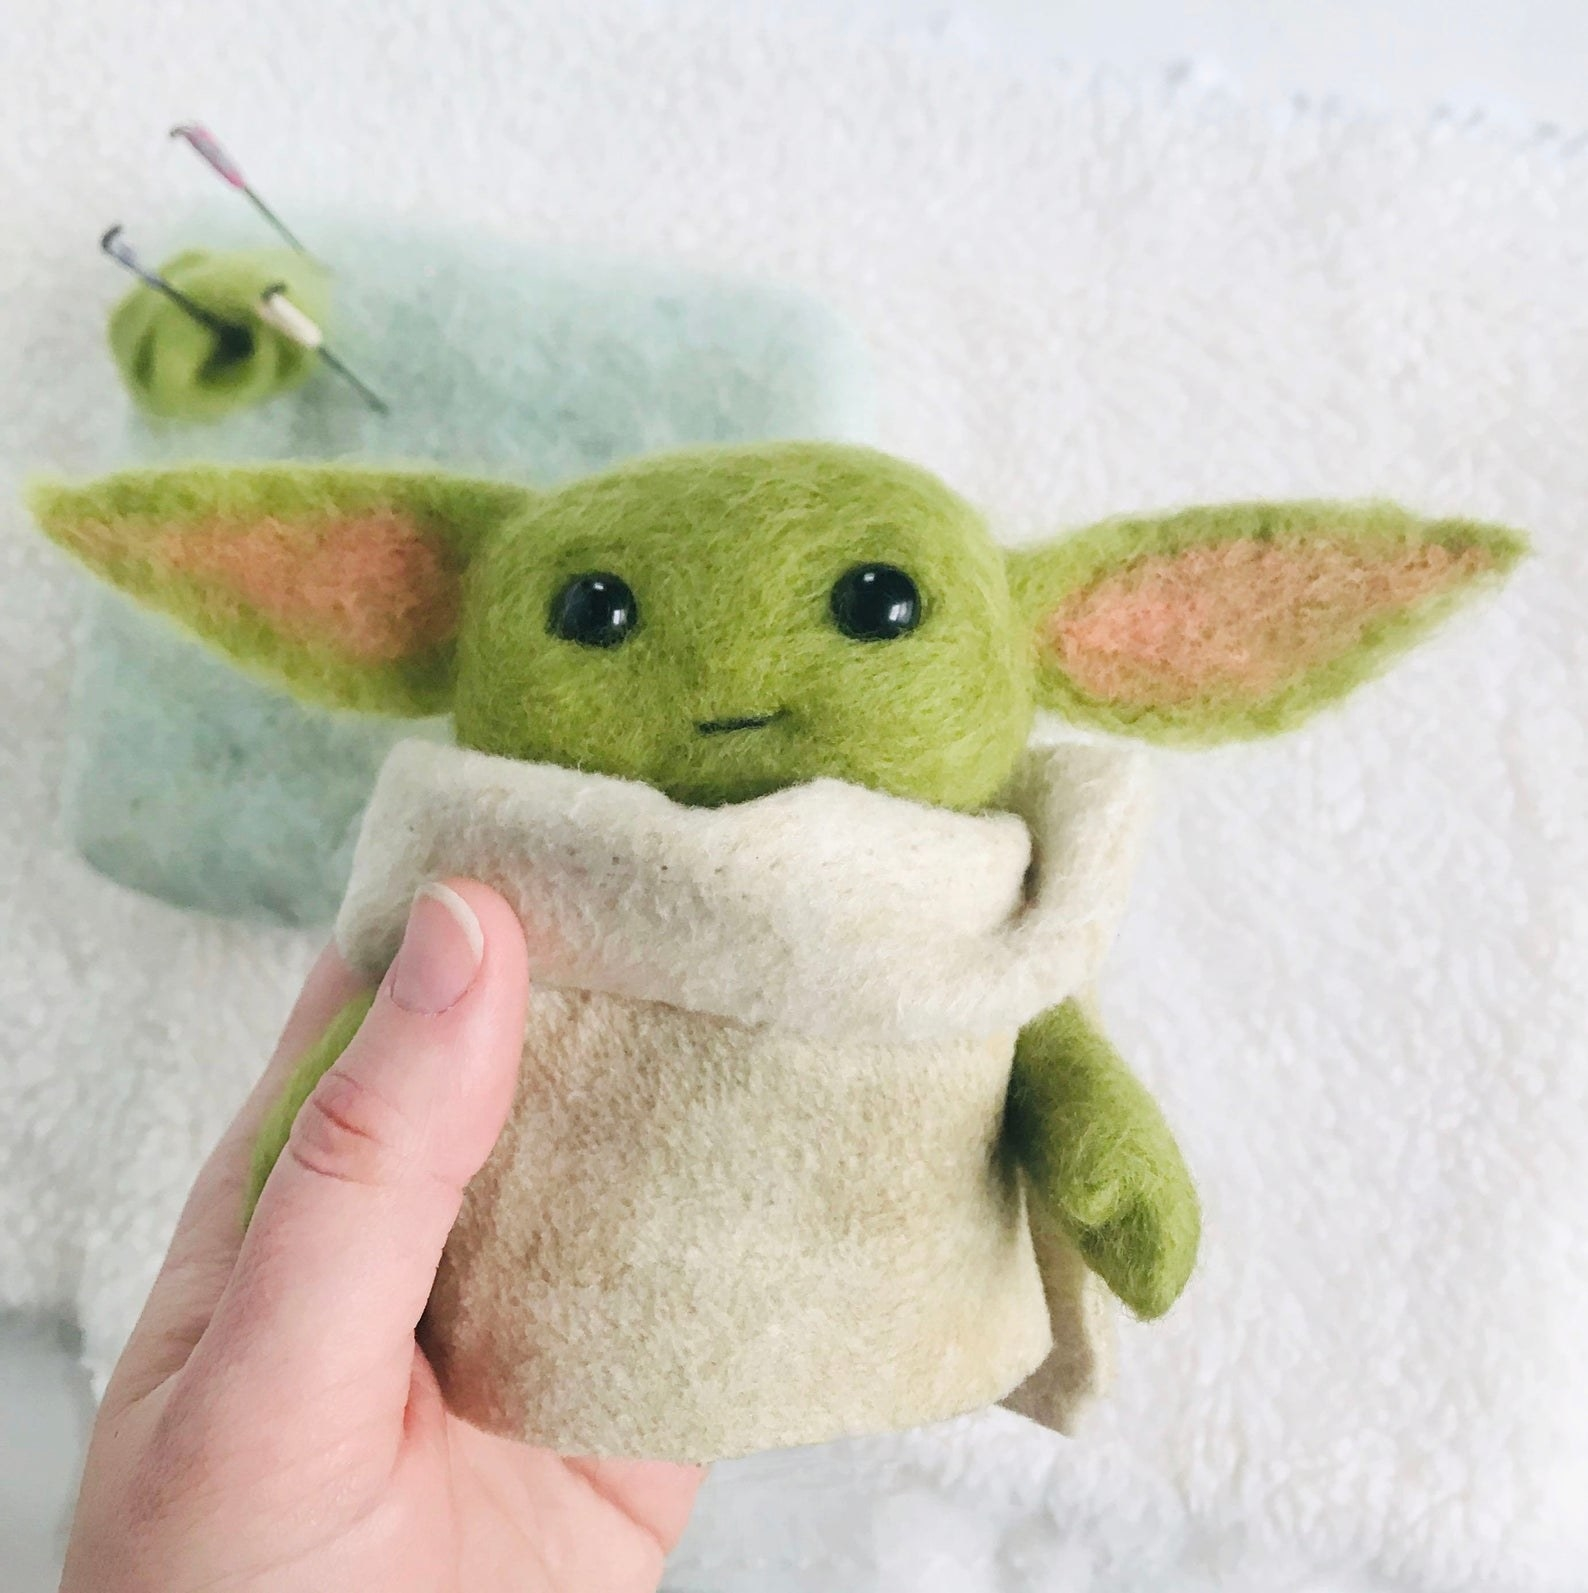 a model holding the woven, soft baby yoda in their hand